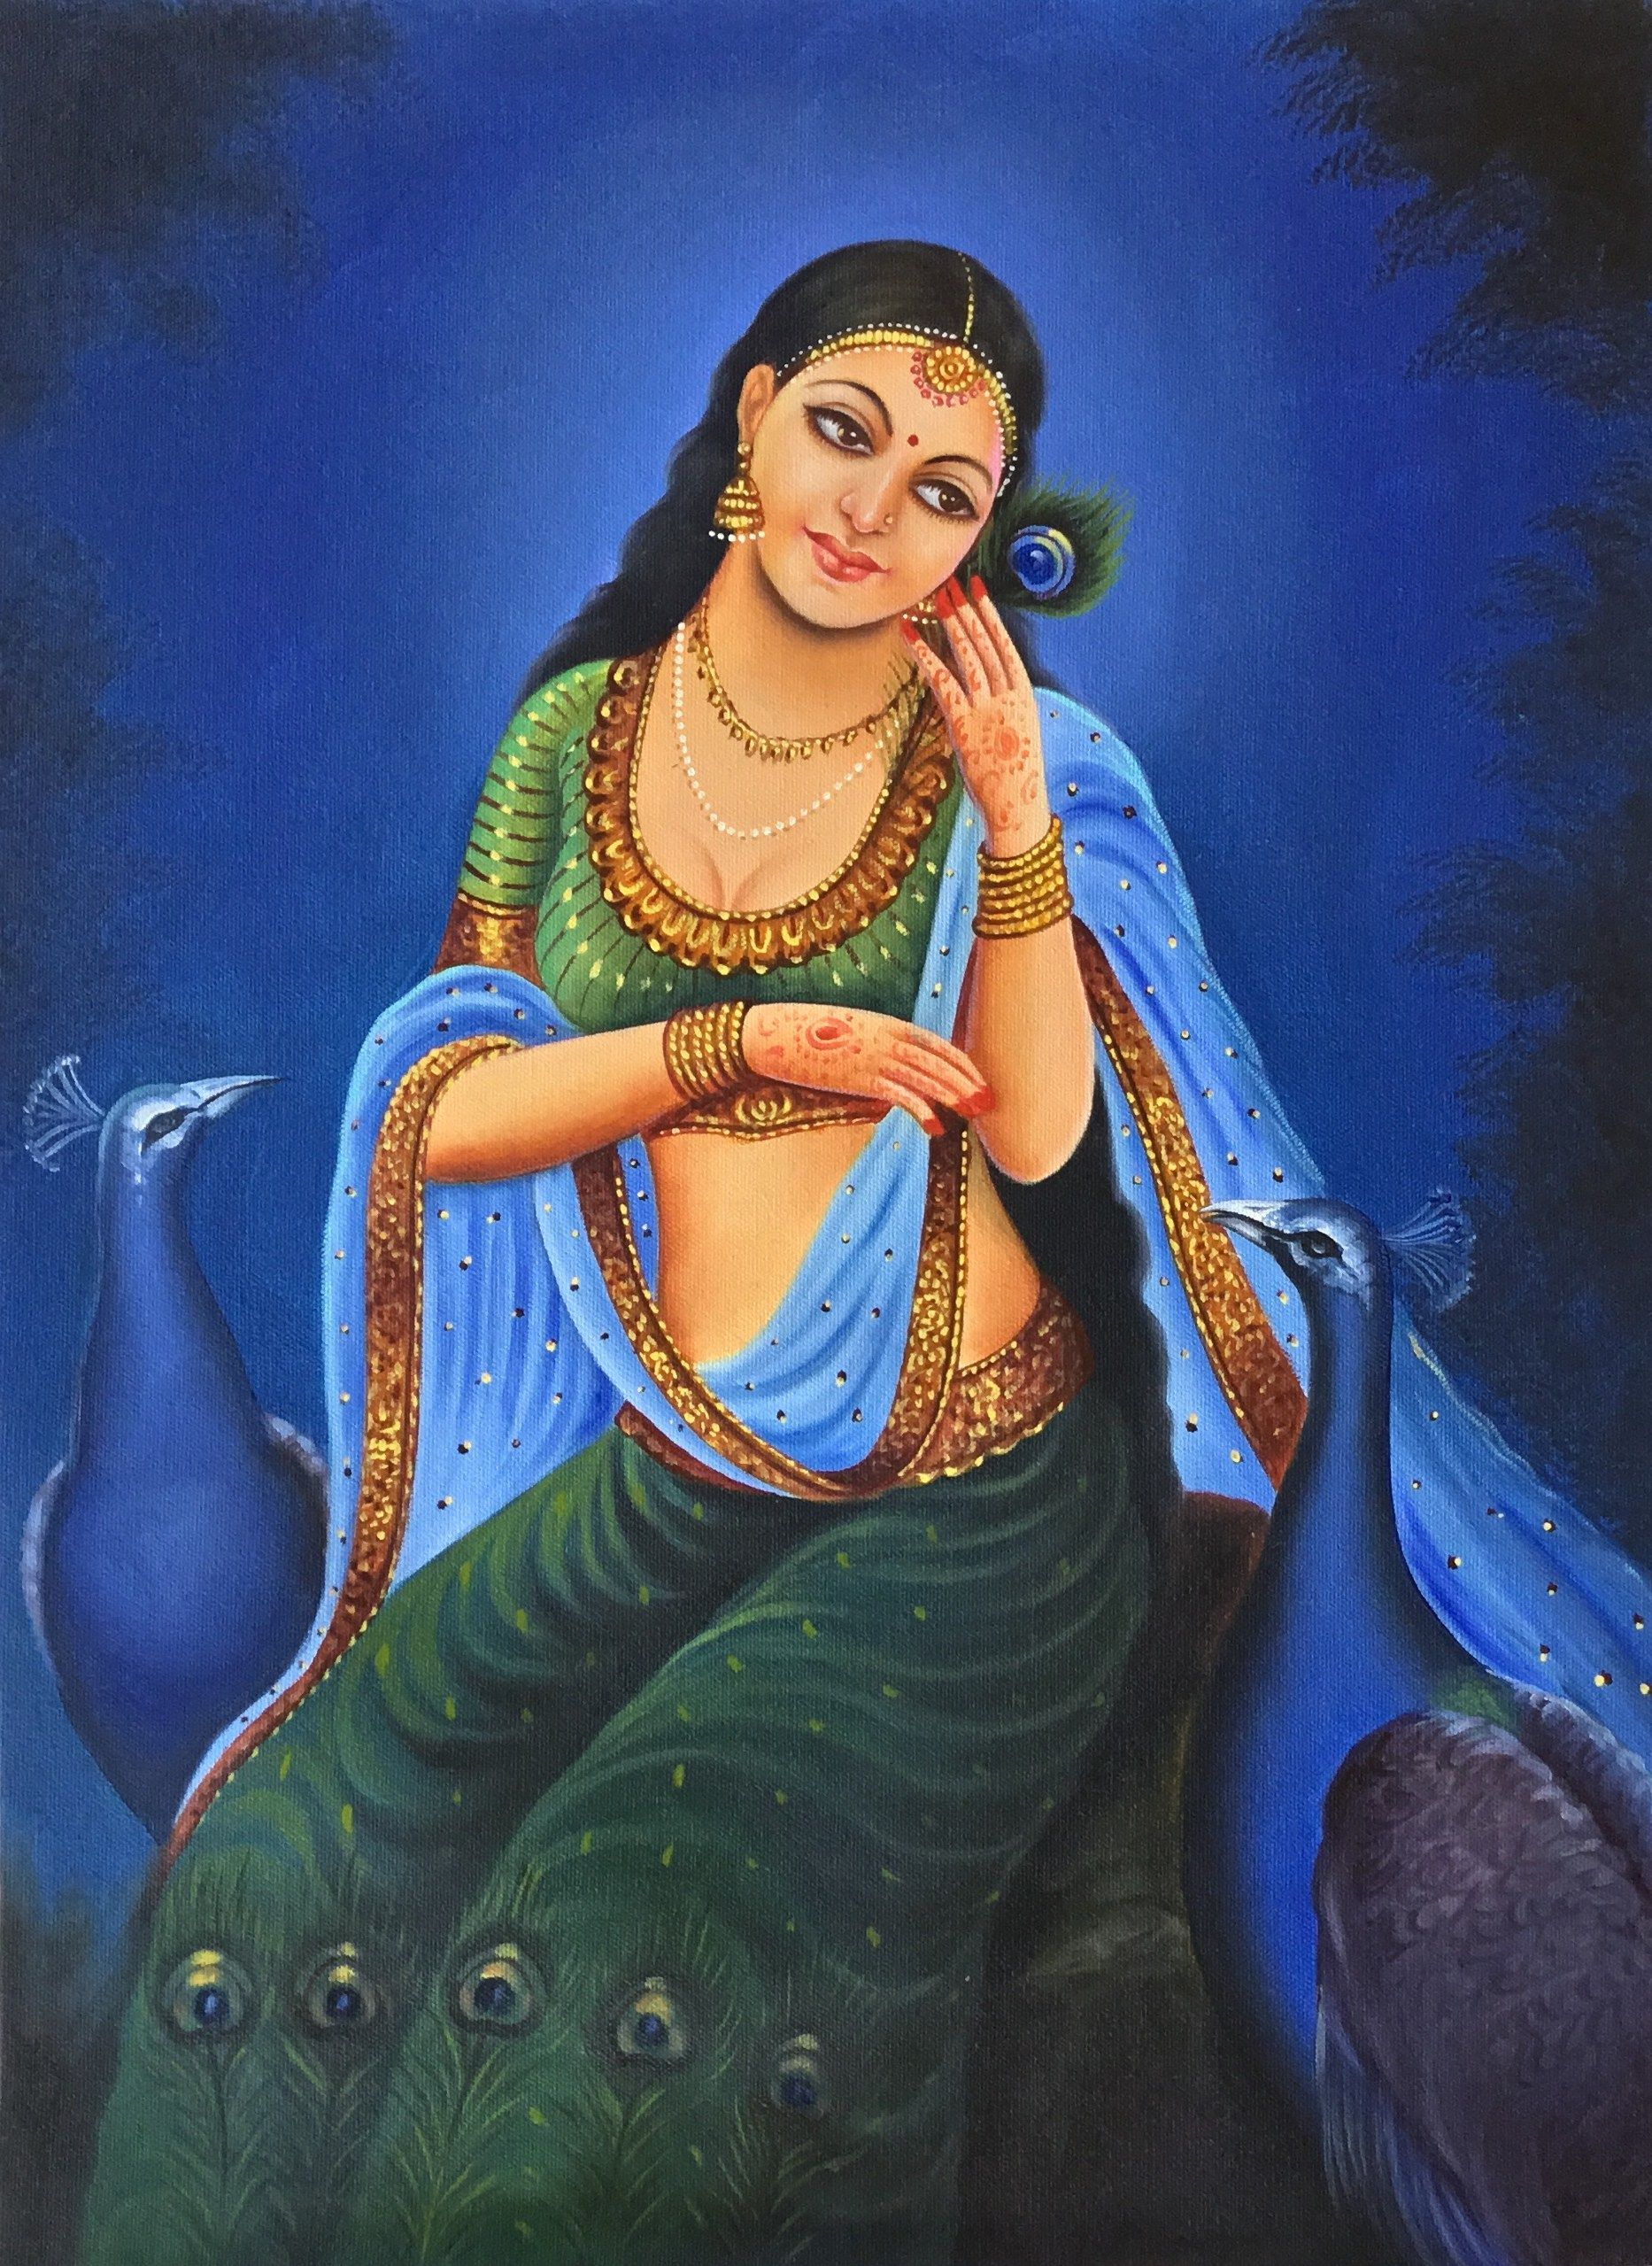 Rajasthan Lady Painting Handmade Indian Damsel Peacock Wall Decor